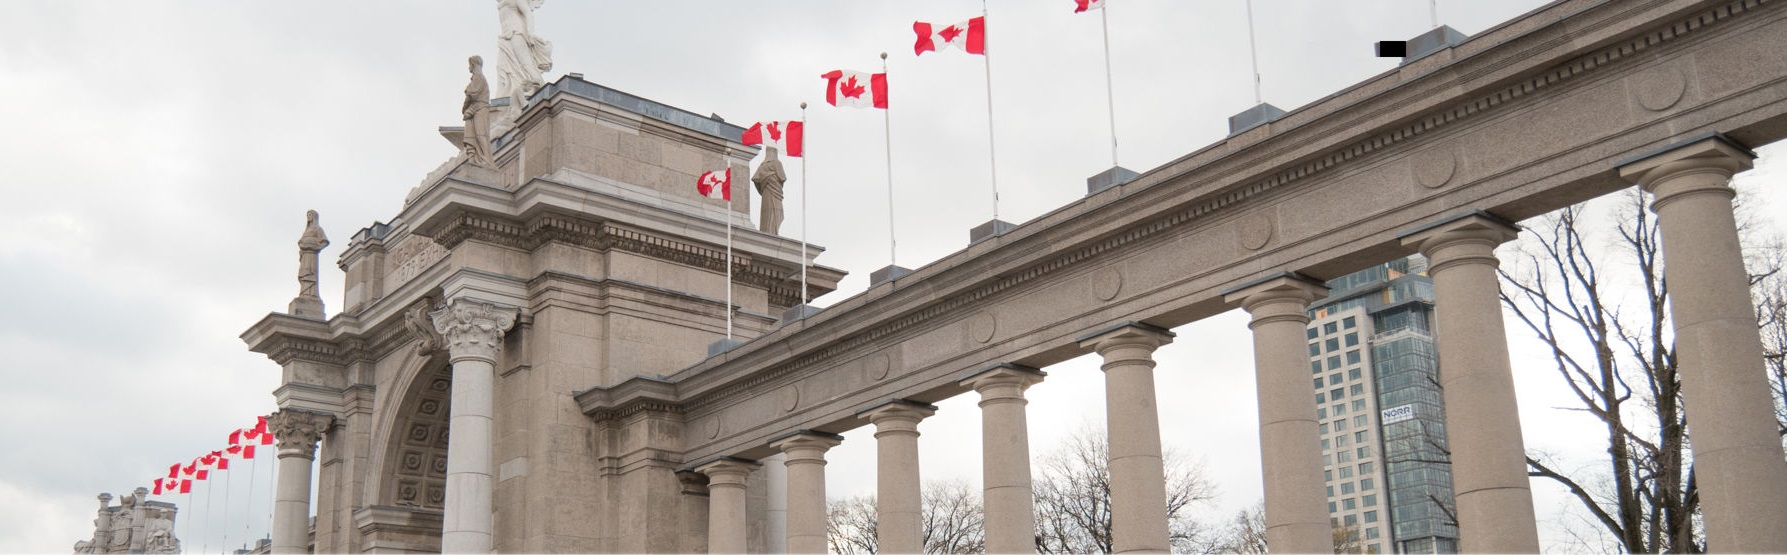 Exhibition Place